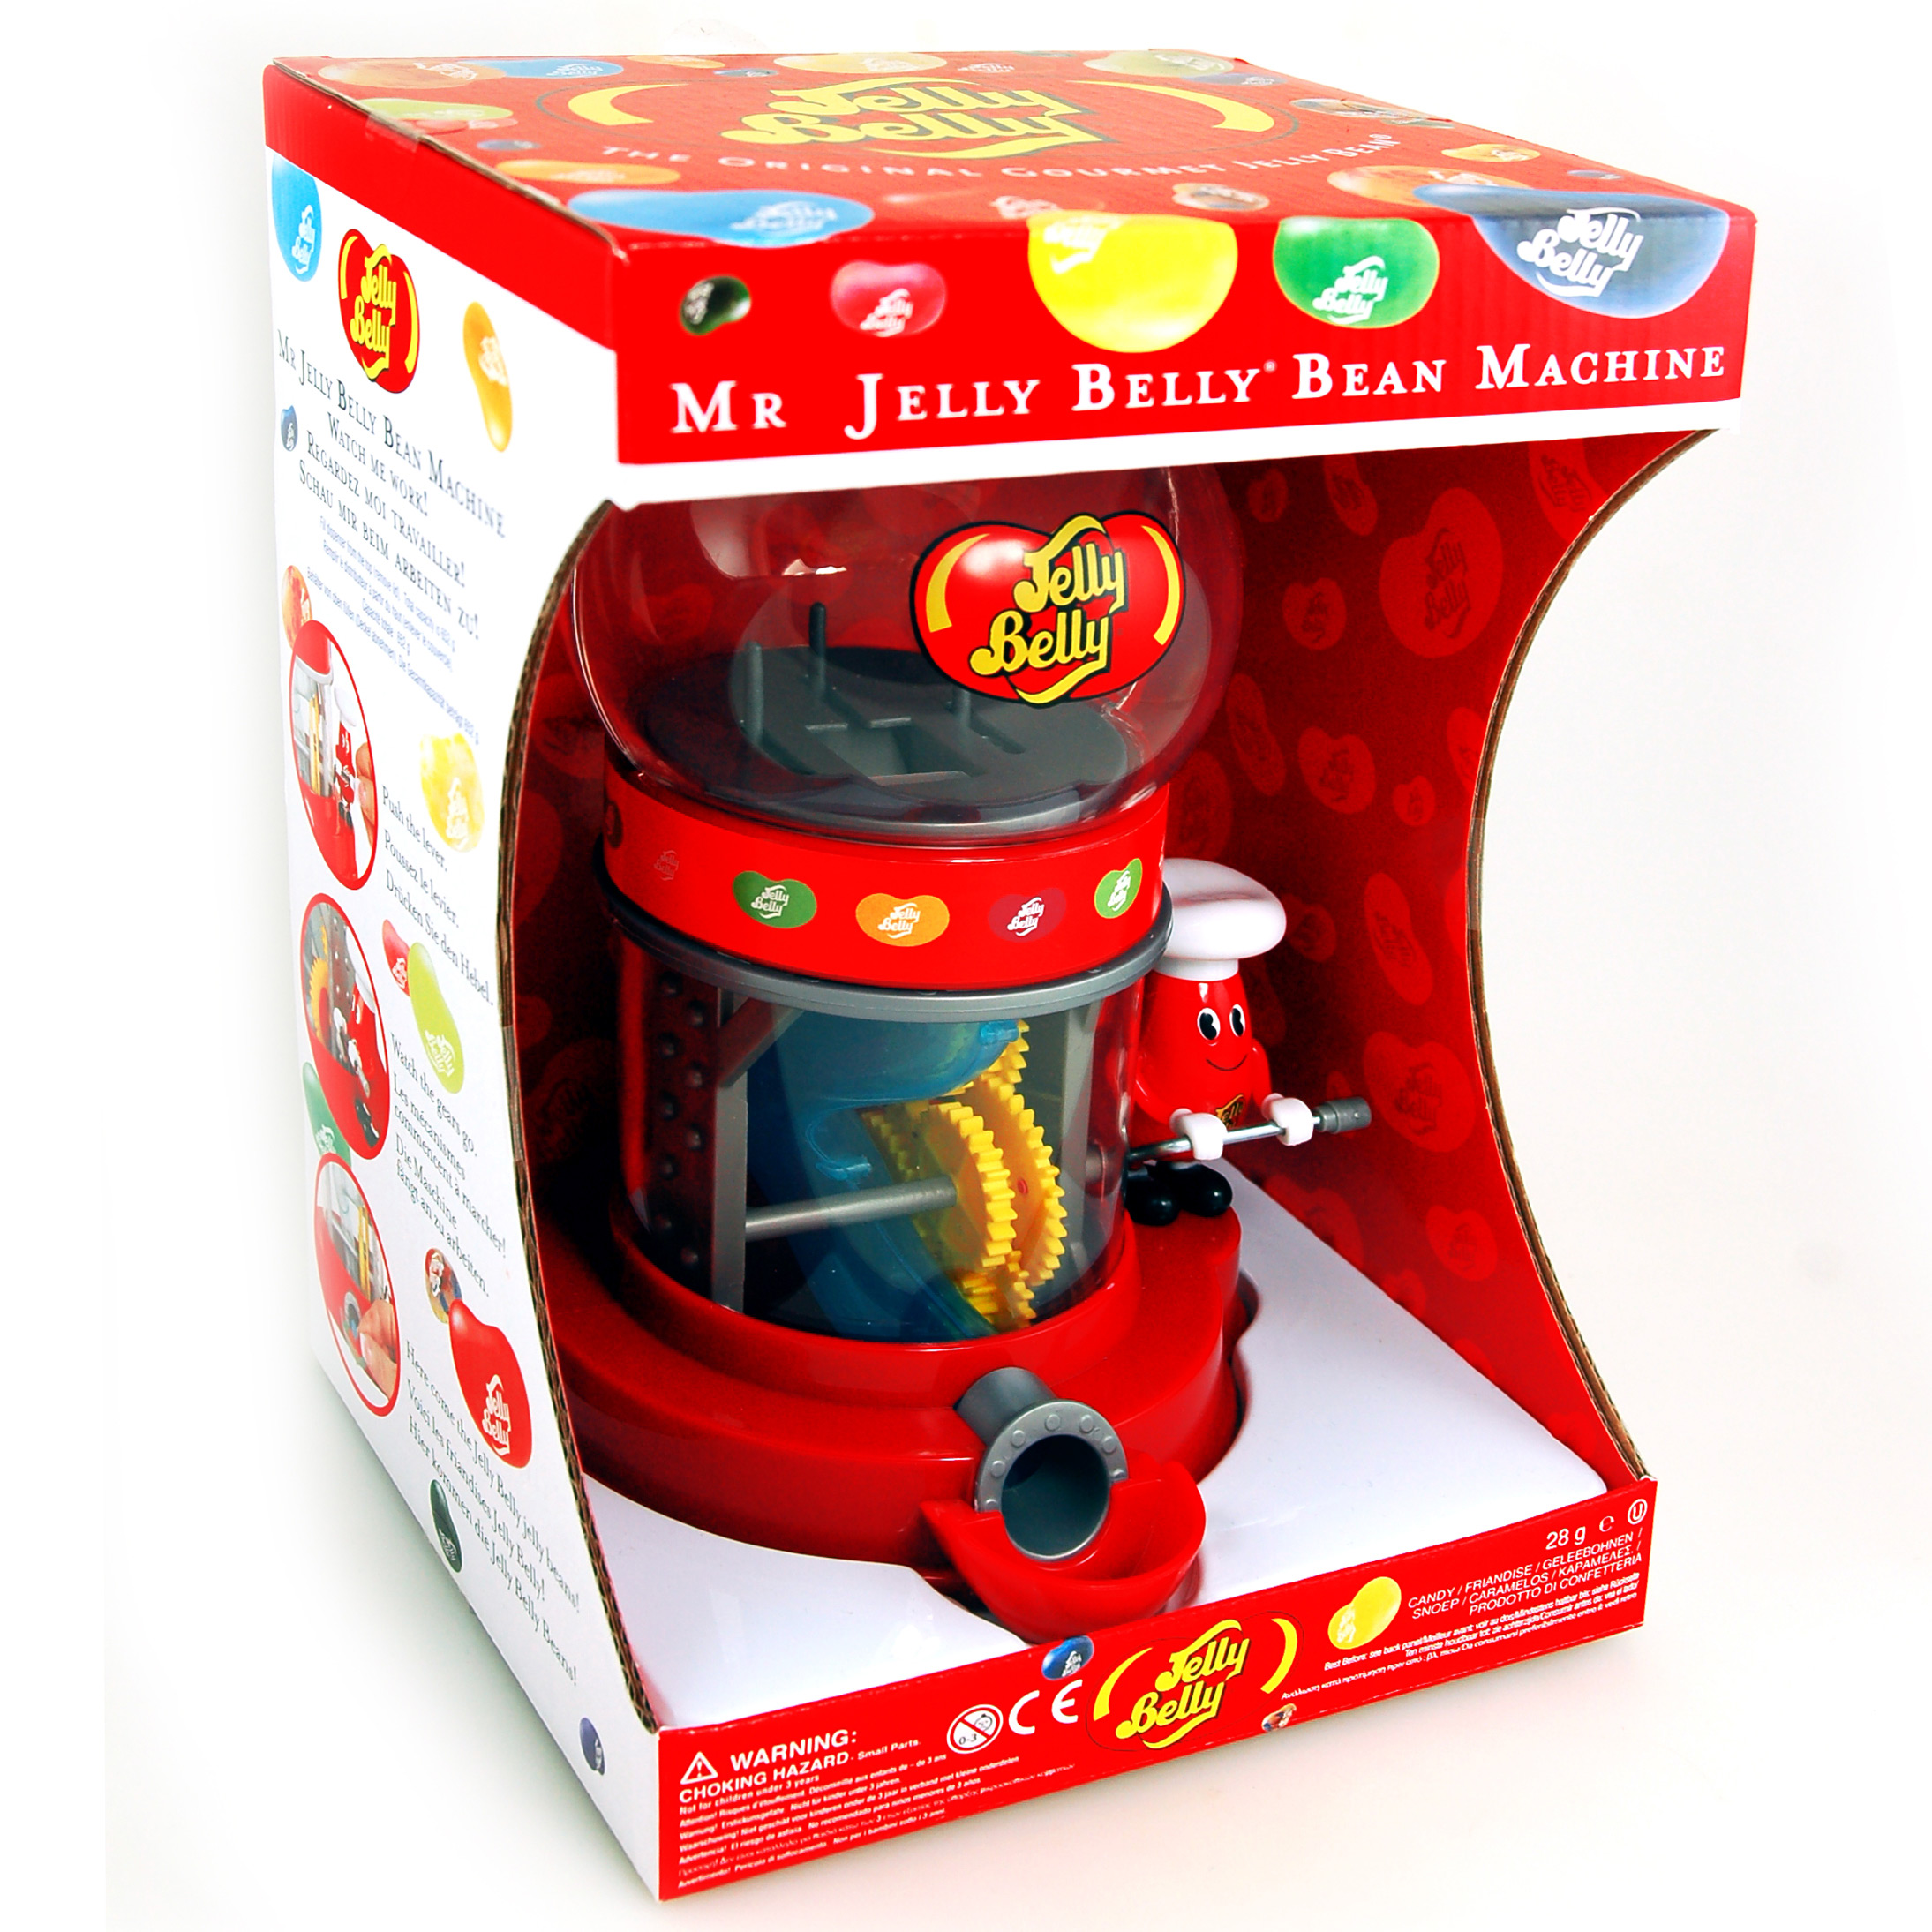 jelly belly mr jelly belly bean machine online kaufen im world of sweets shop. Black Bedroom Furniture Sets. Home Design Ideas